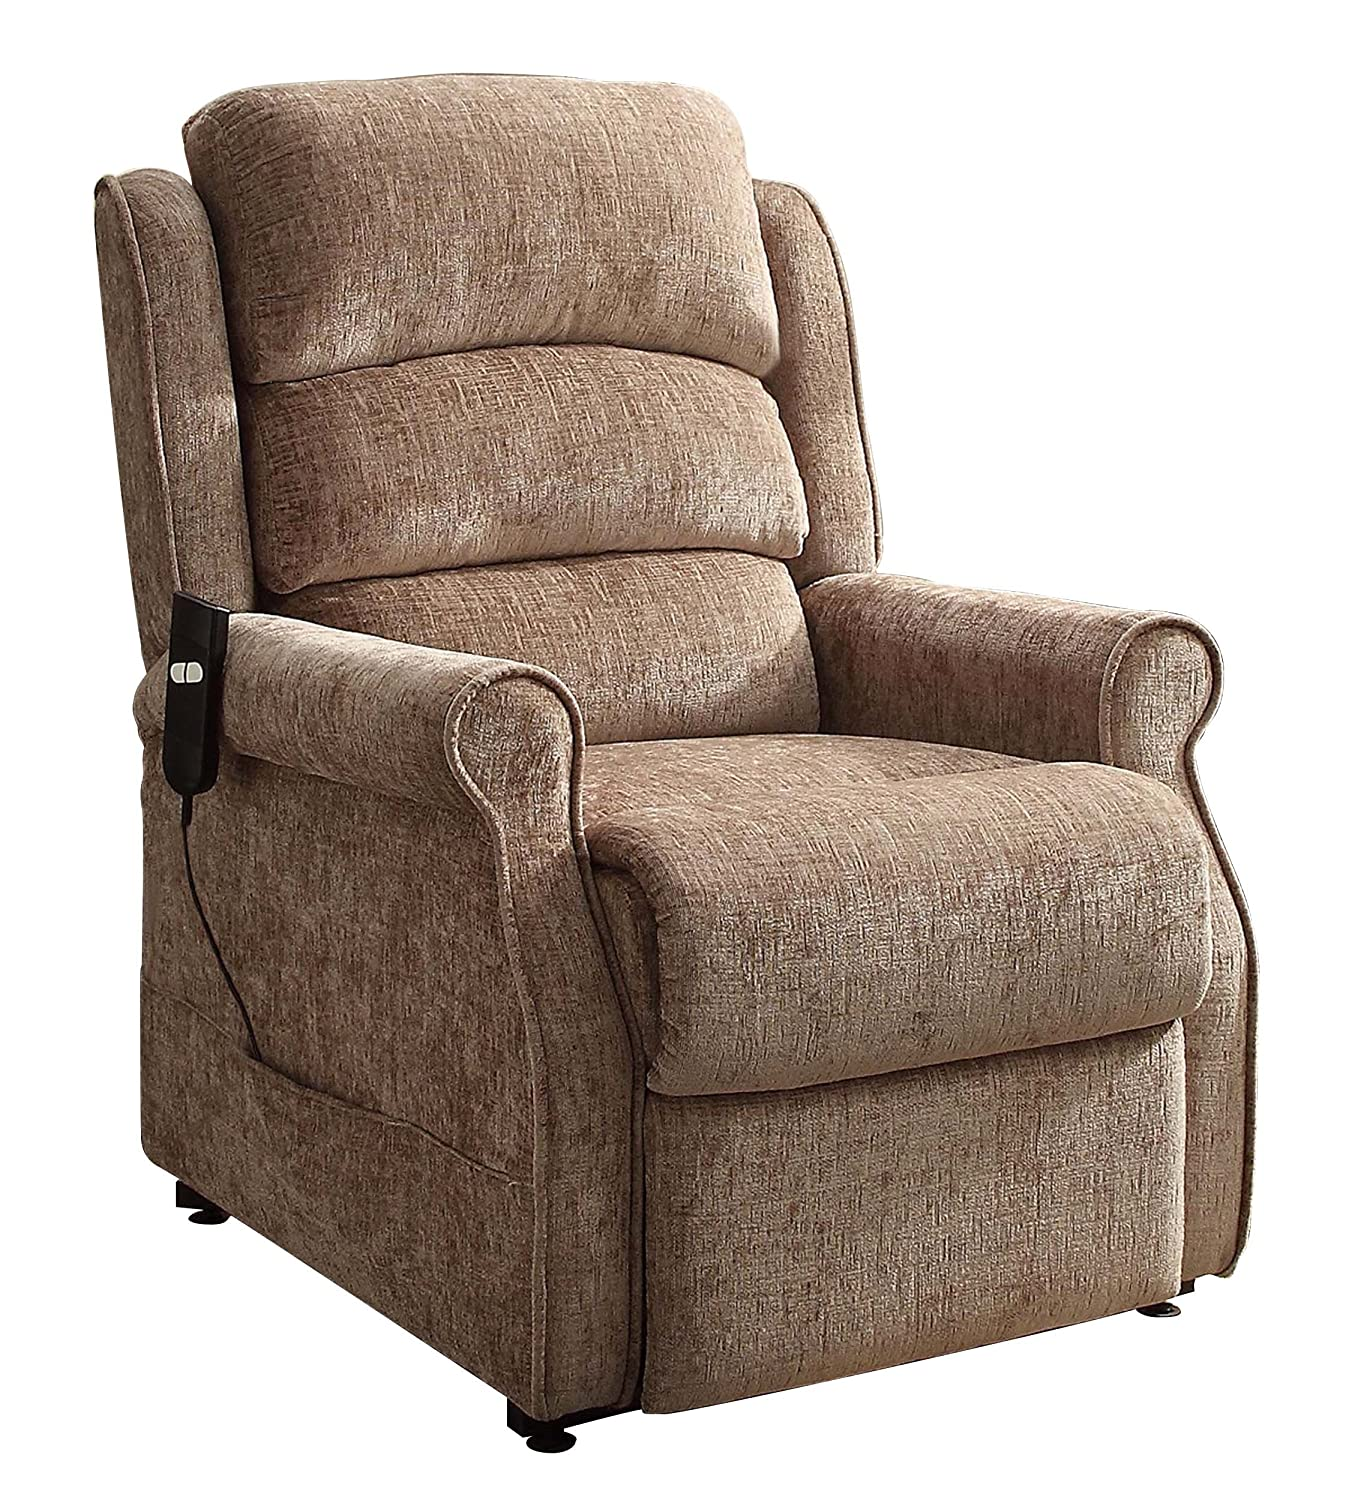 Amazon Homelegance 8509 1LT Power Lift Recliner Chair Brown